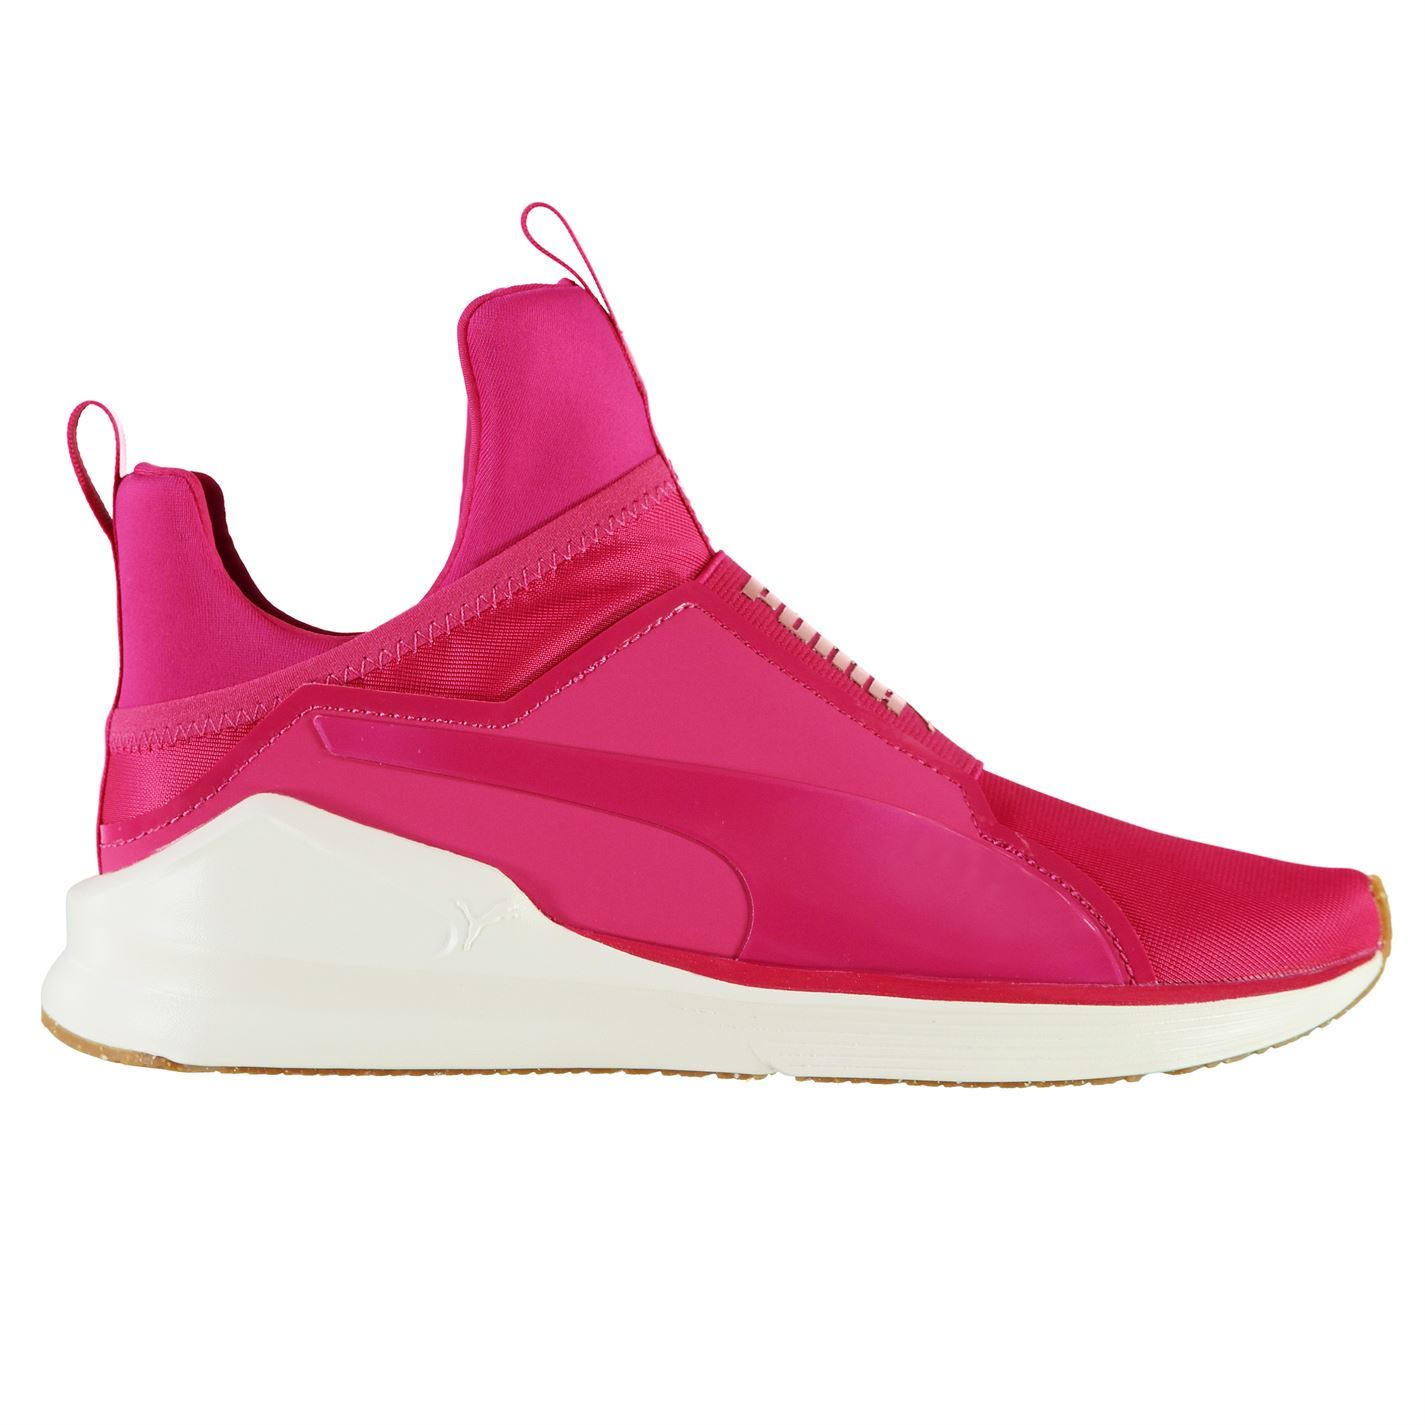 ... Puma Fierce Velvet Rope Fitness Training Shoes Womens Pink Gym Trainers  Sneakers ... 638220864